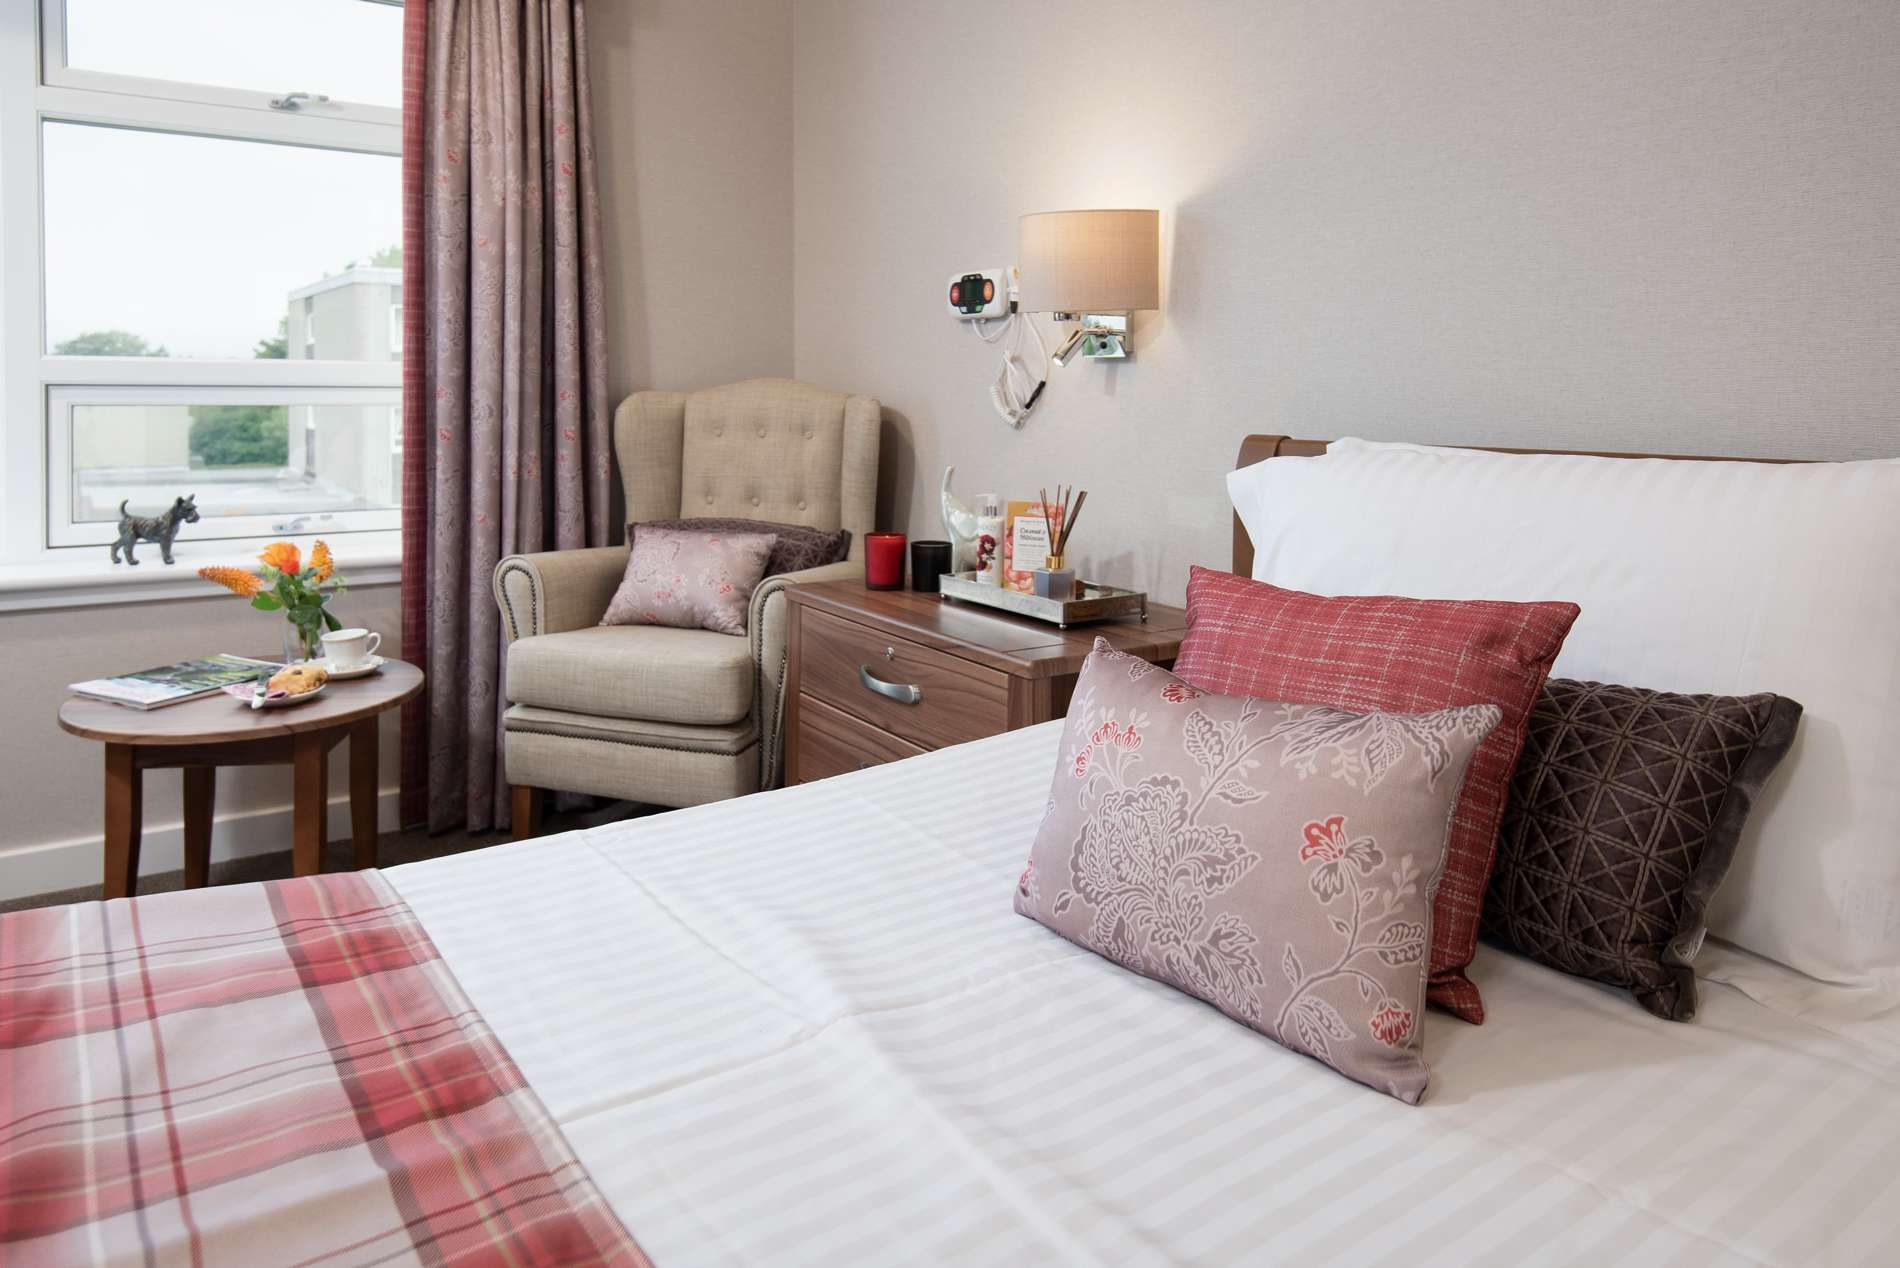 Edinburgh-Care home luxury bedroom inside